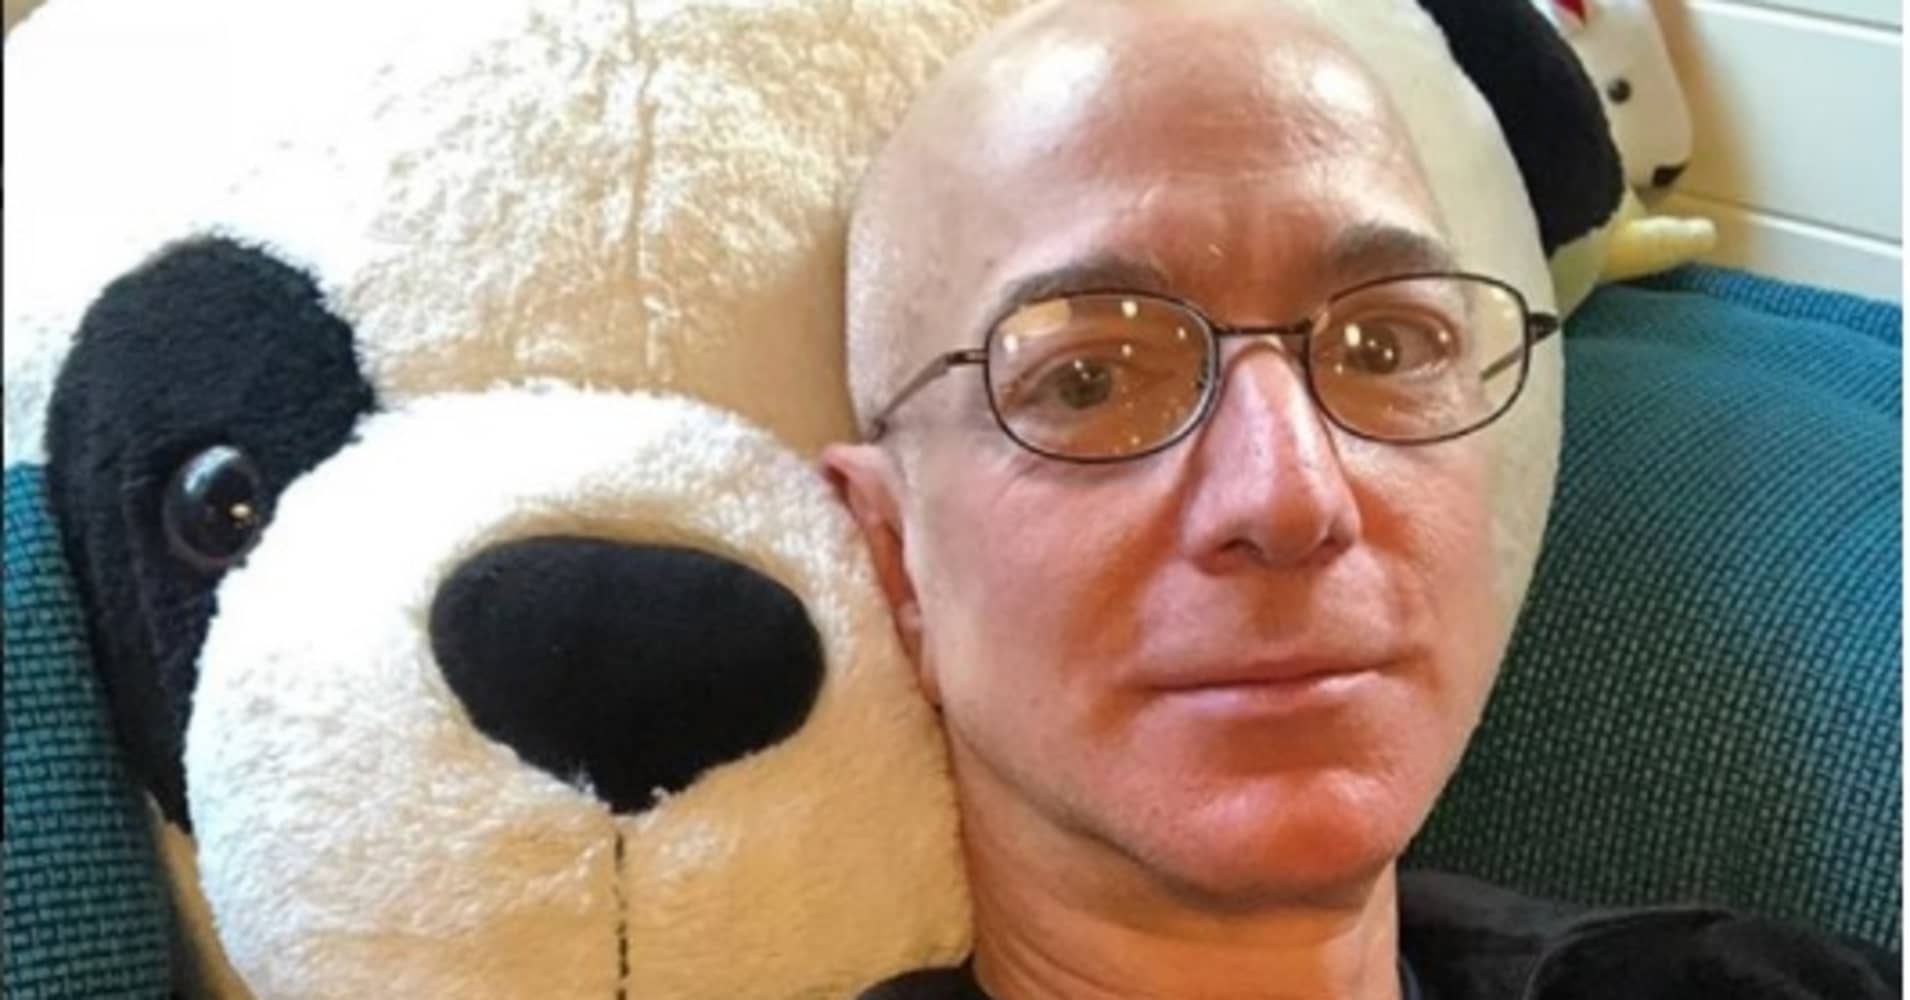 Amazon Ceo Jeff Bezos Life Outside The Office According To Instagram